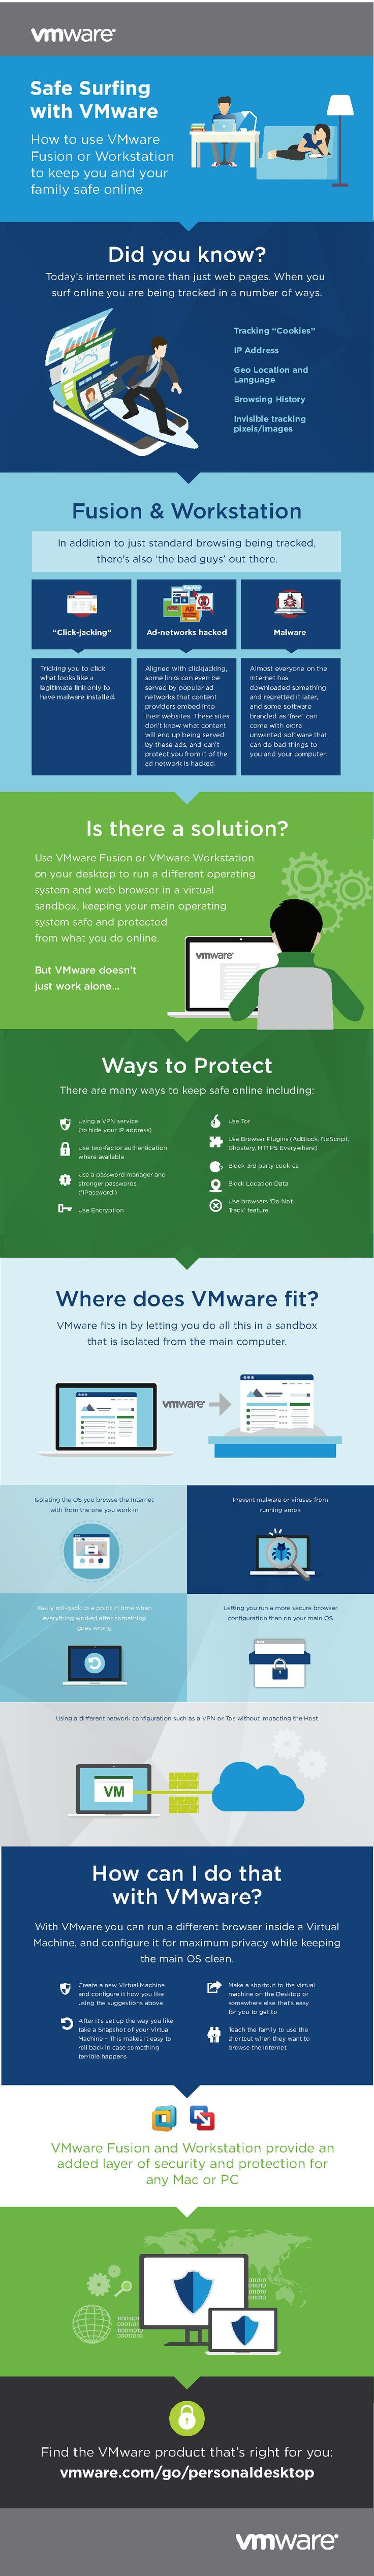 How to use VMware Fusion or Workstation